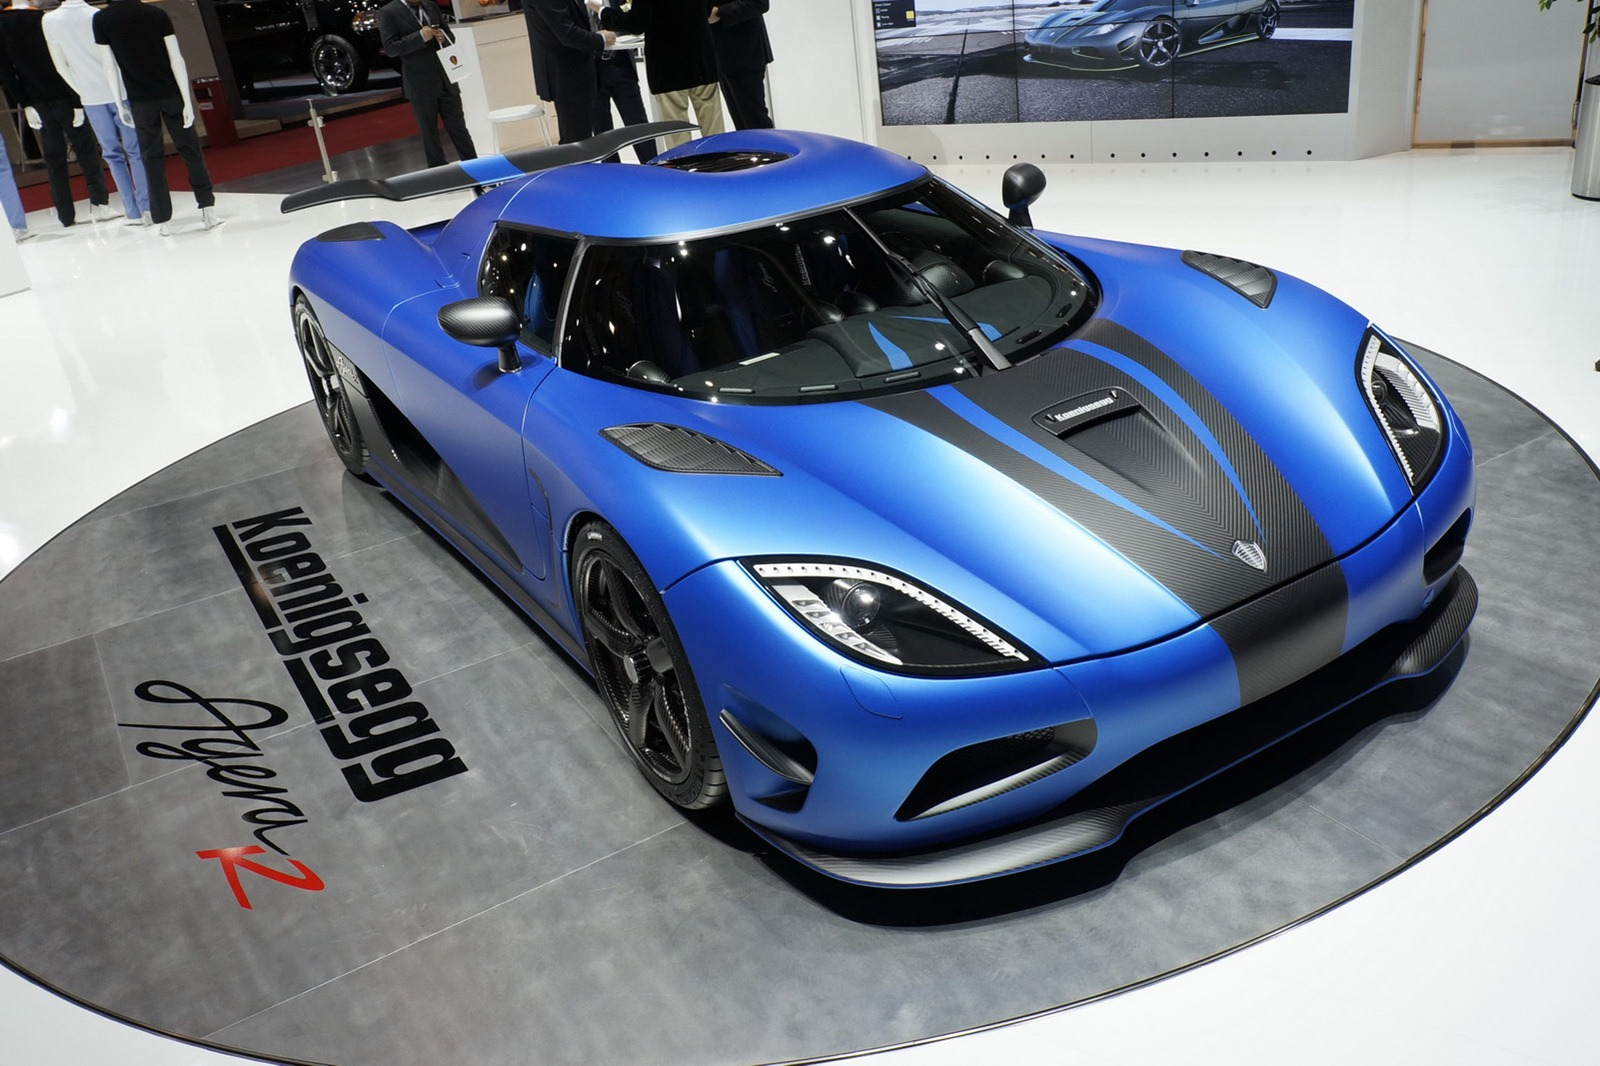 koenigsegg_agera_r_blue_awesome_image